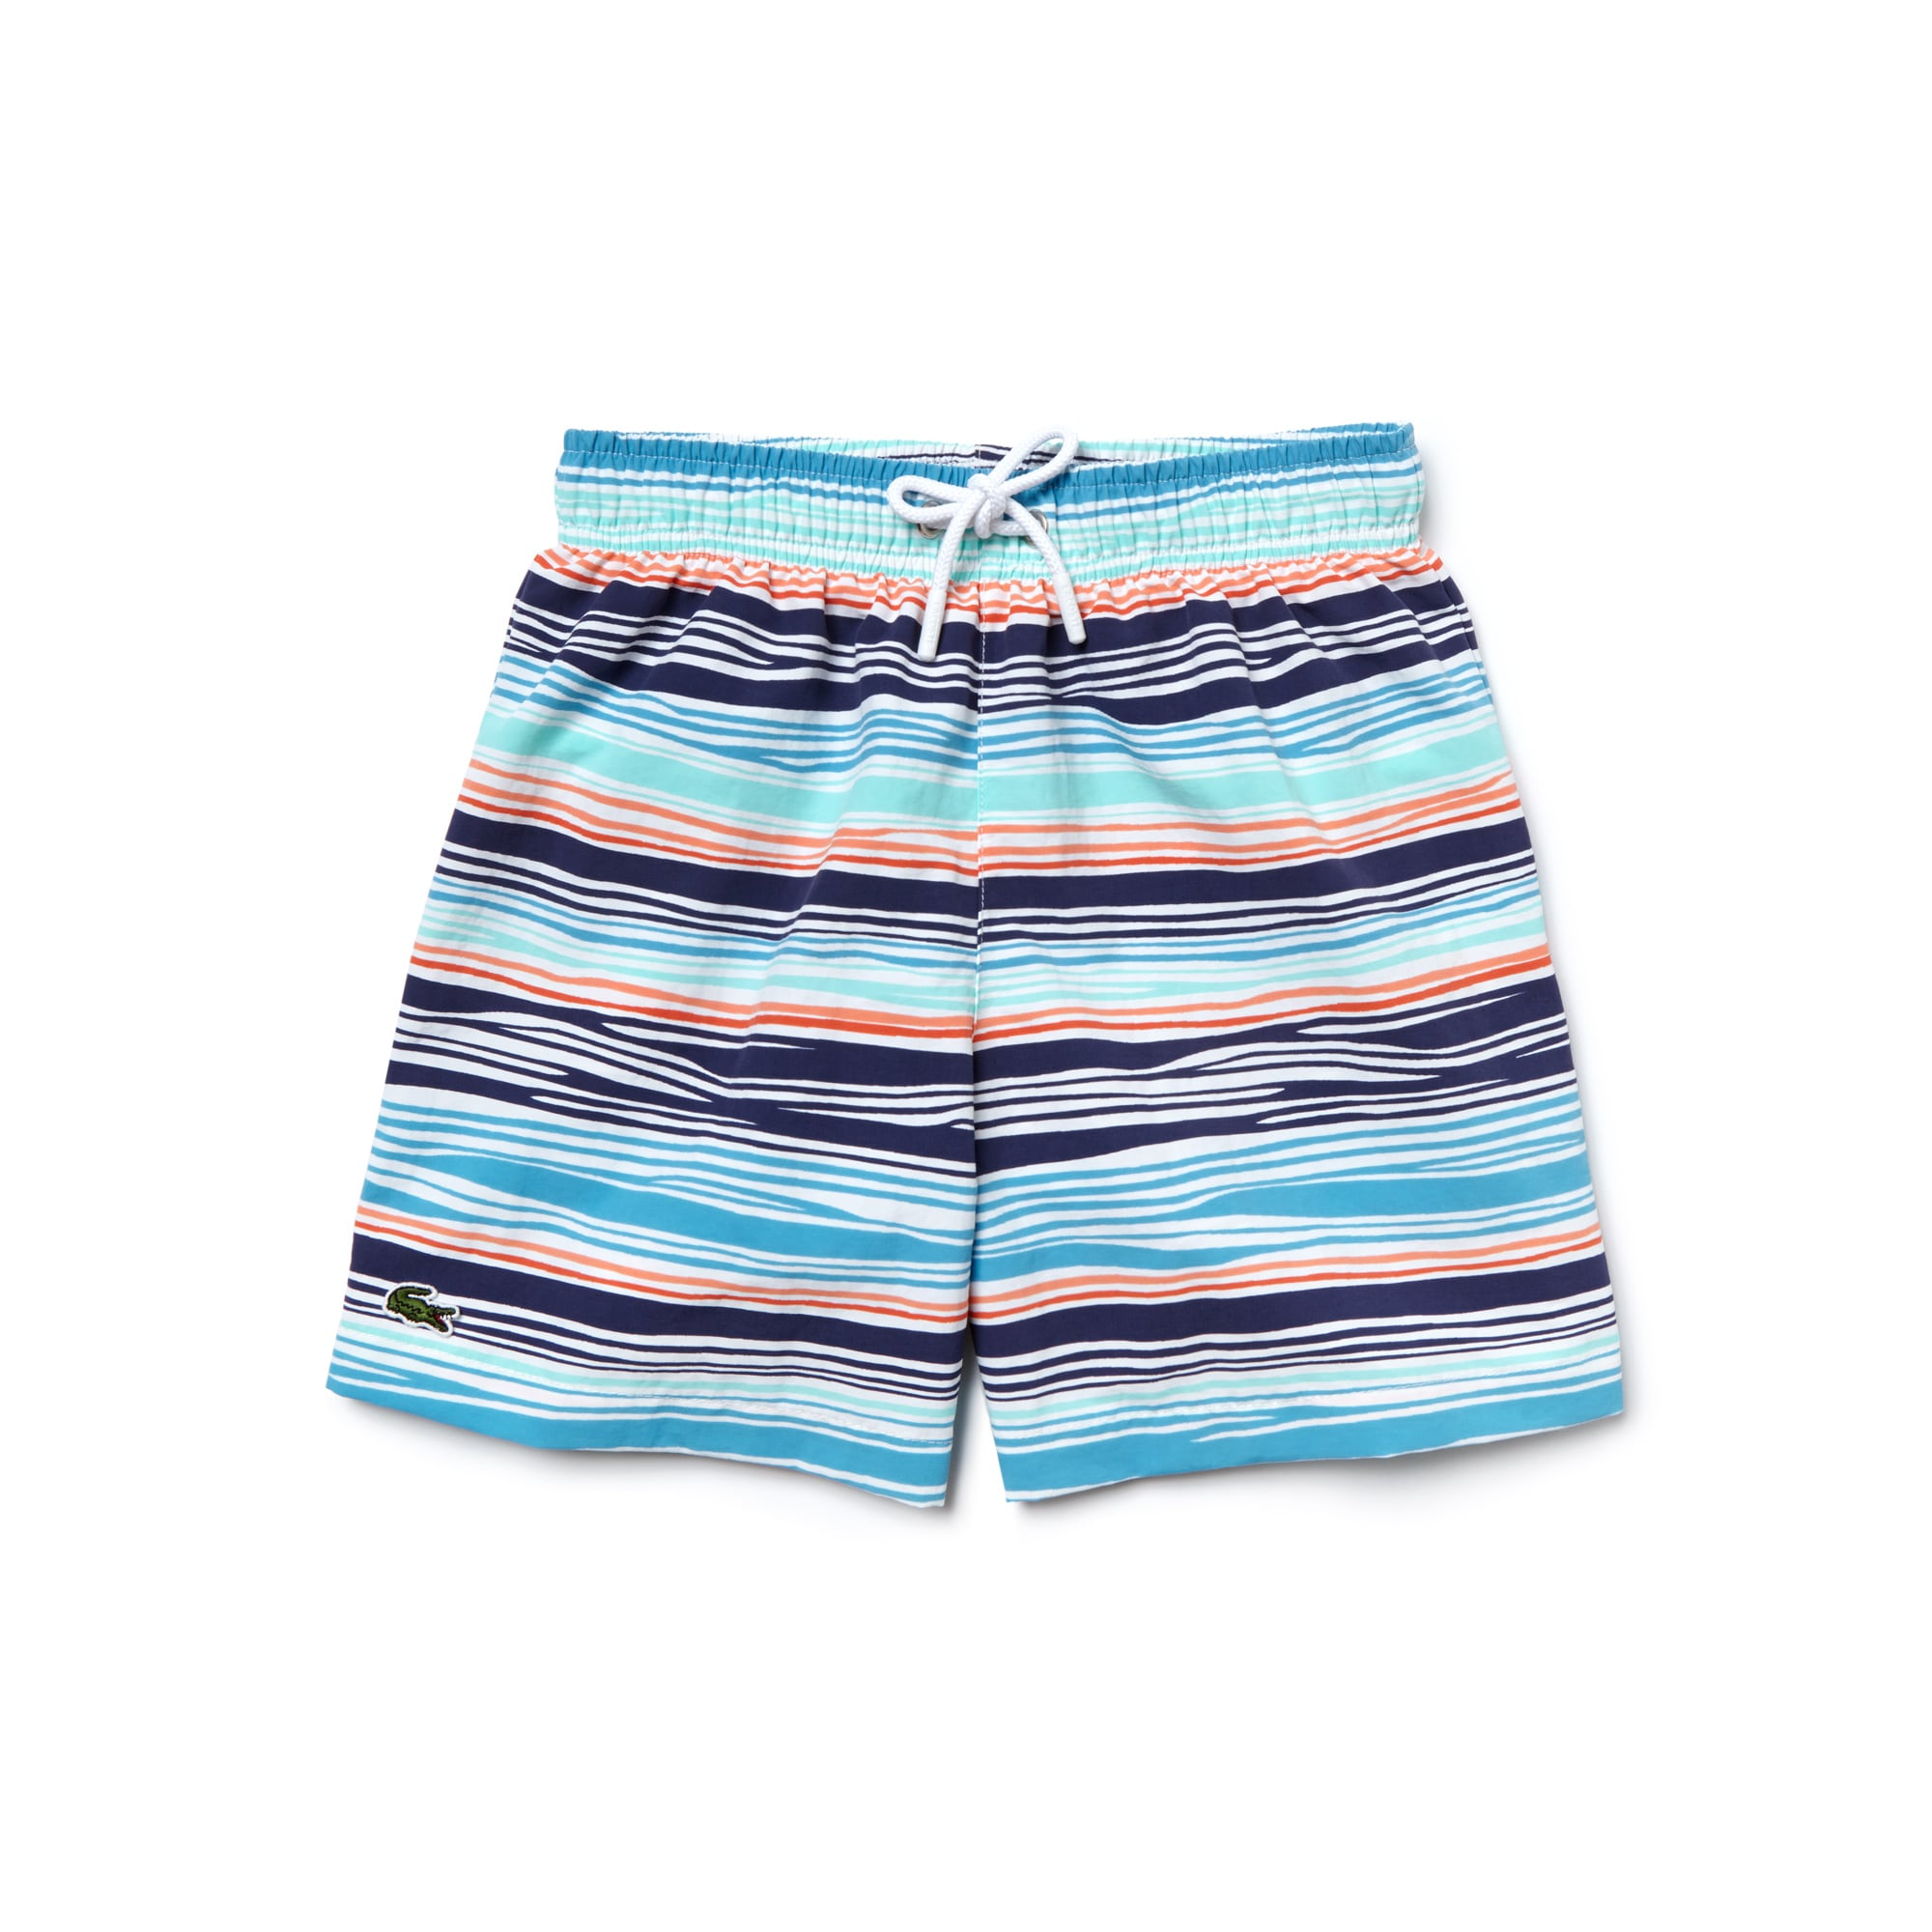 Boy's Striped Nylon Swim Shorts